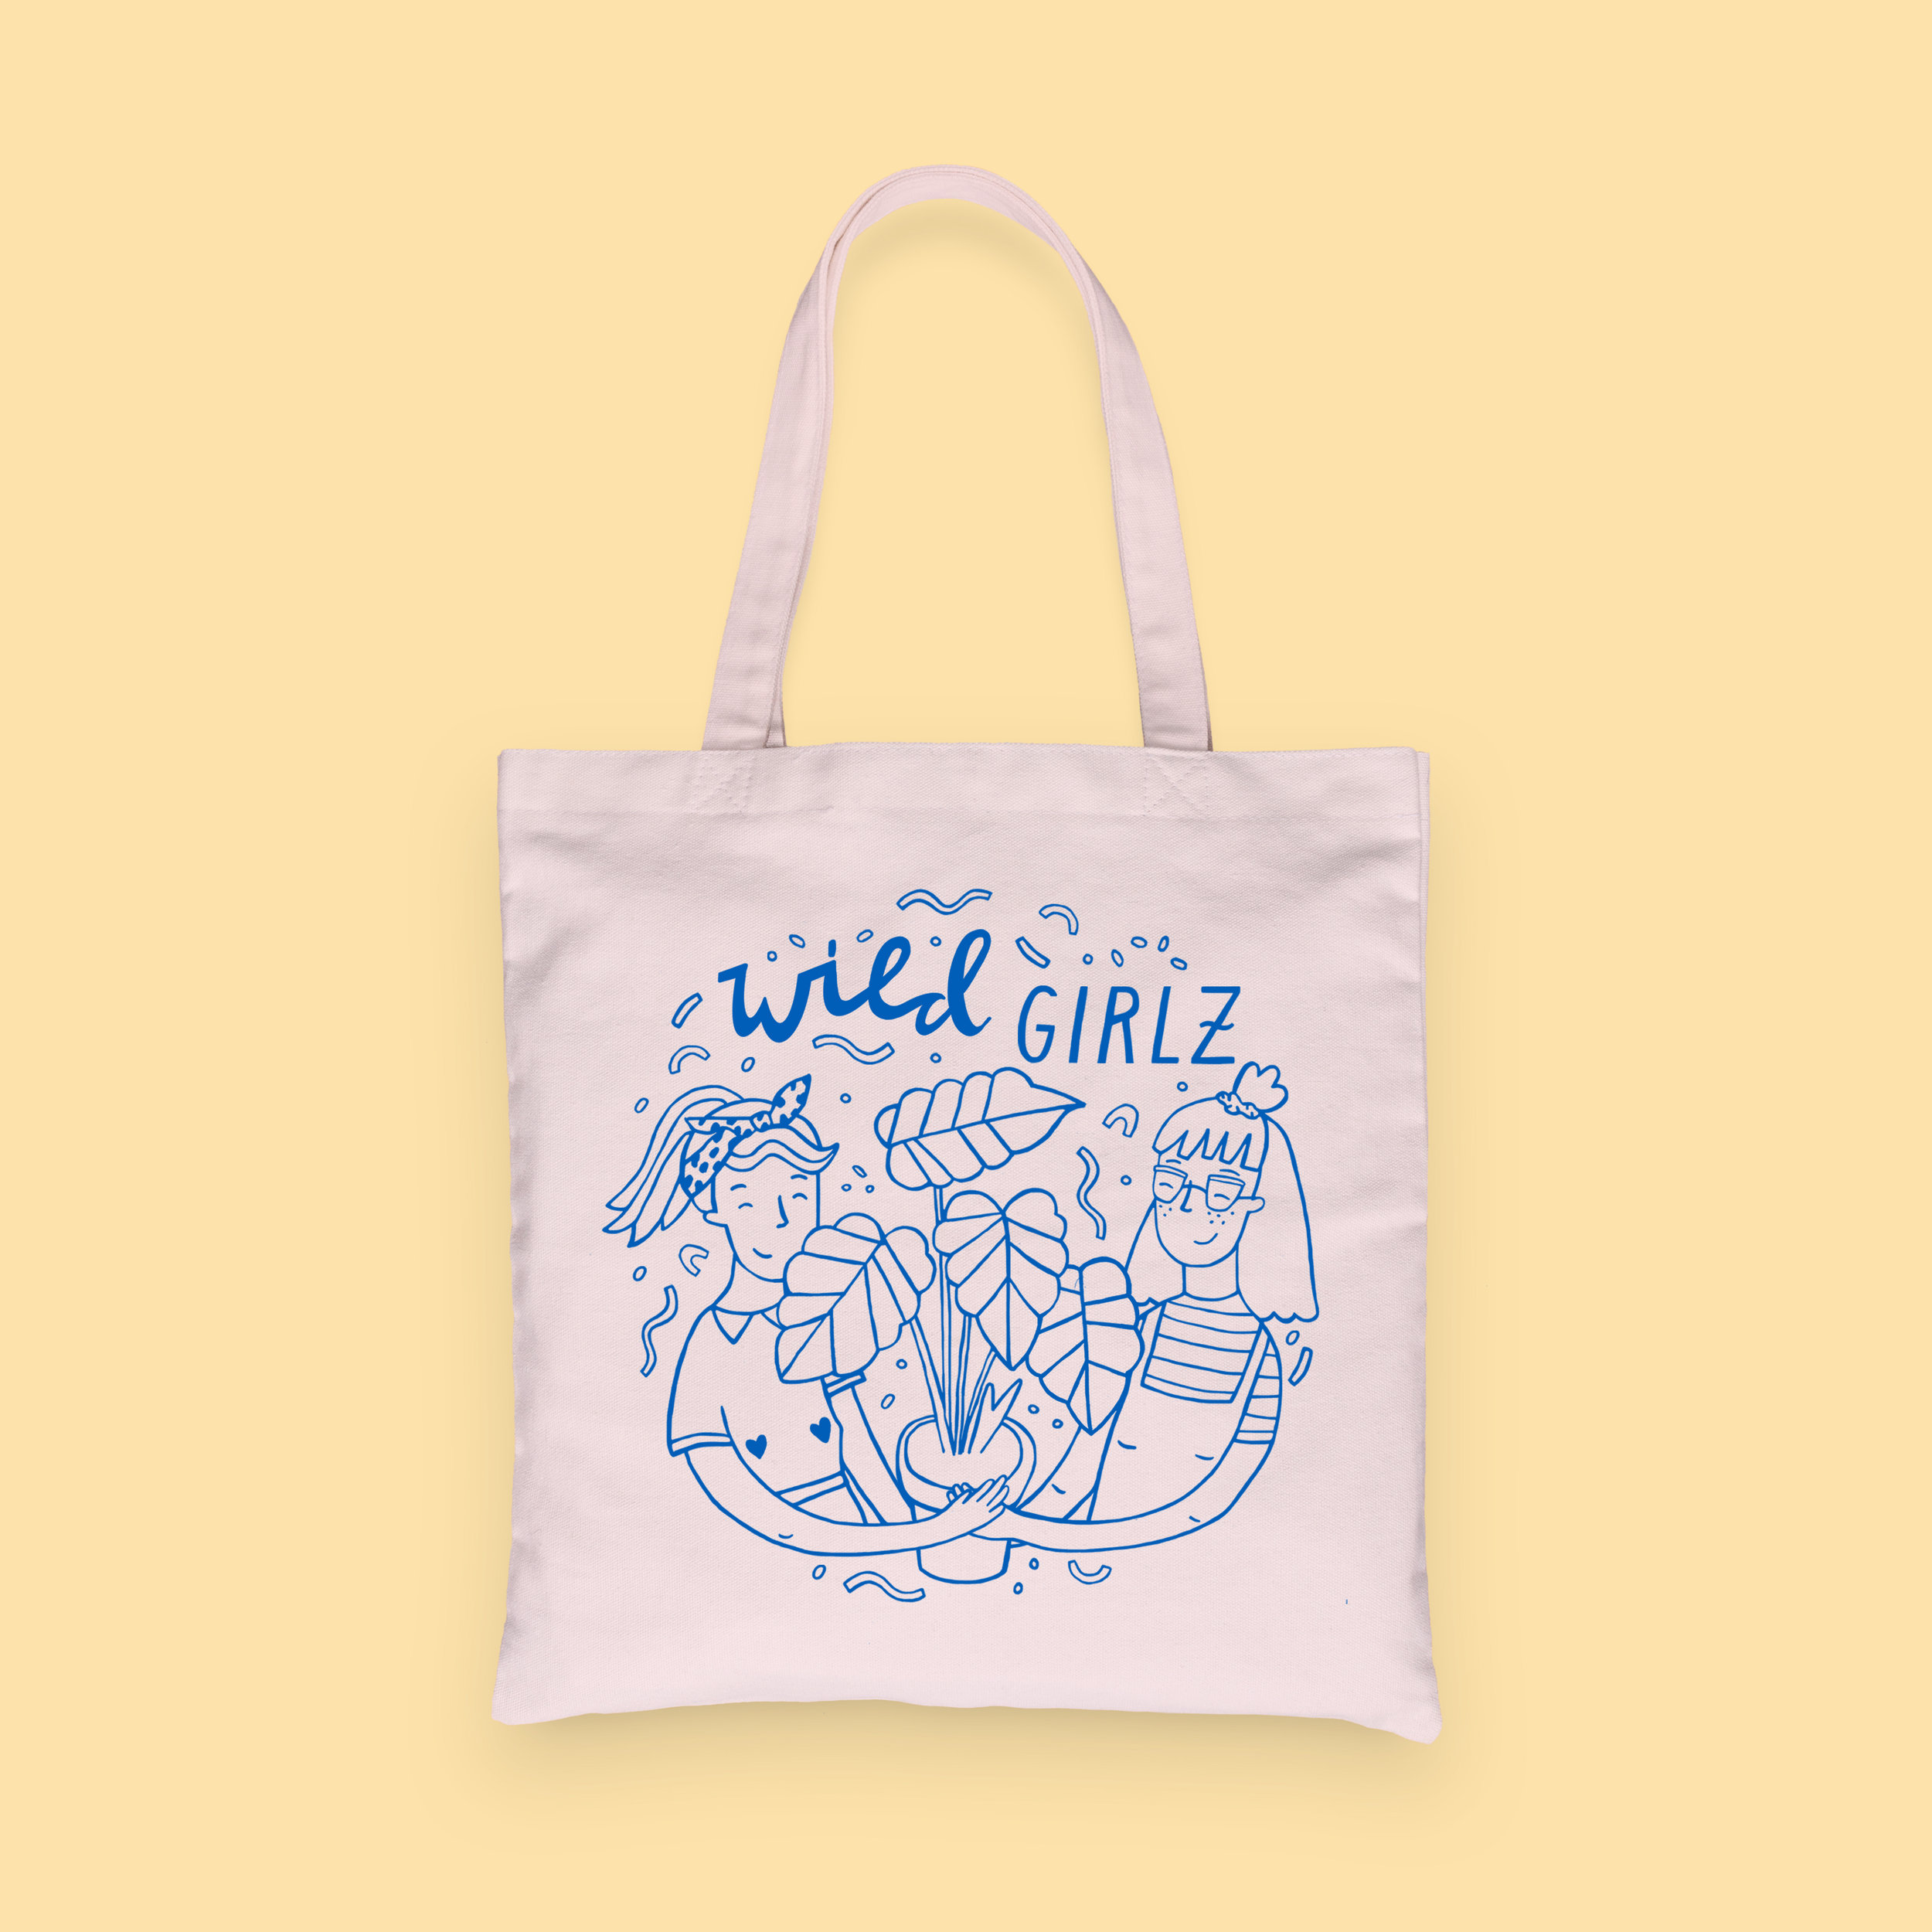 8_GD_Notietzblock_WildGirls_Totebag.jpg